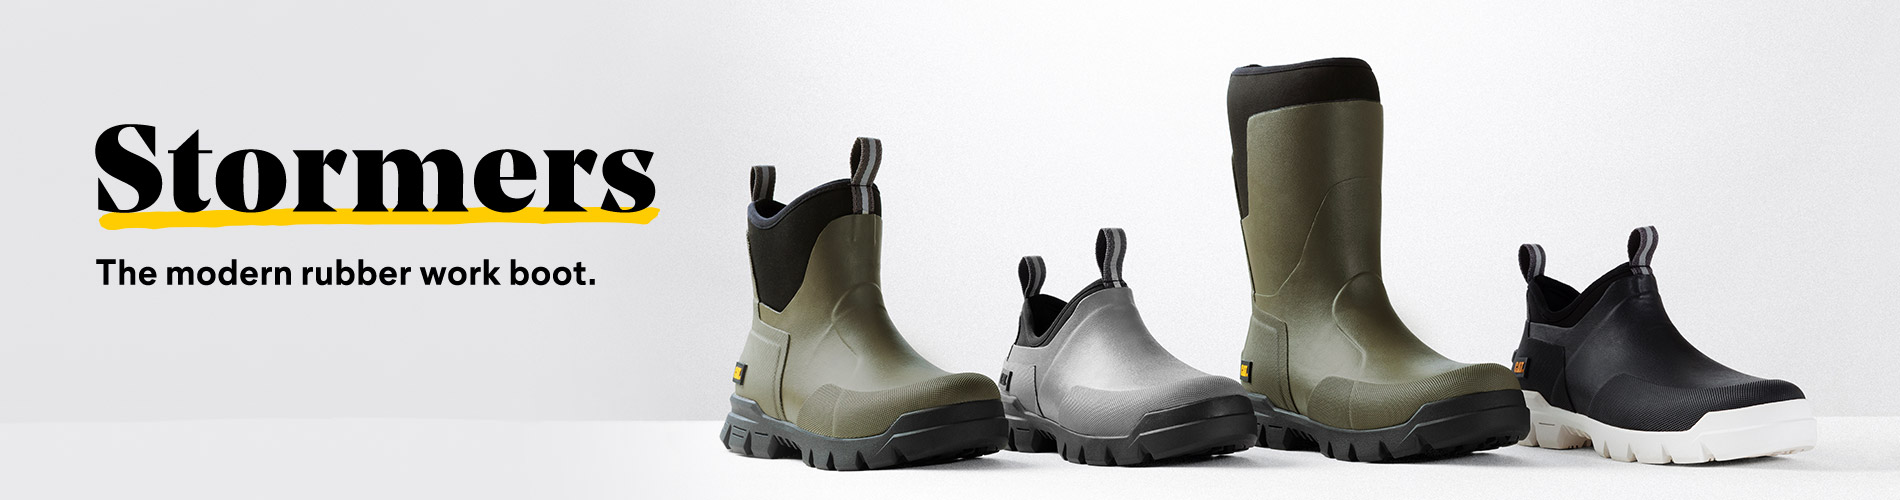 Stormers The modern rubber work boot.